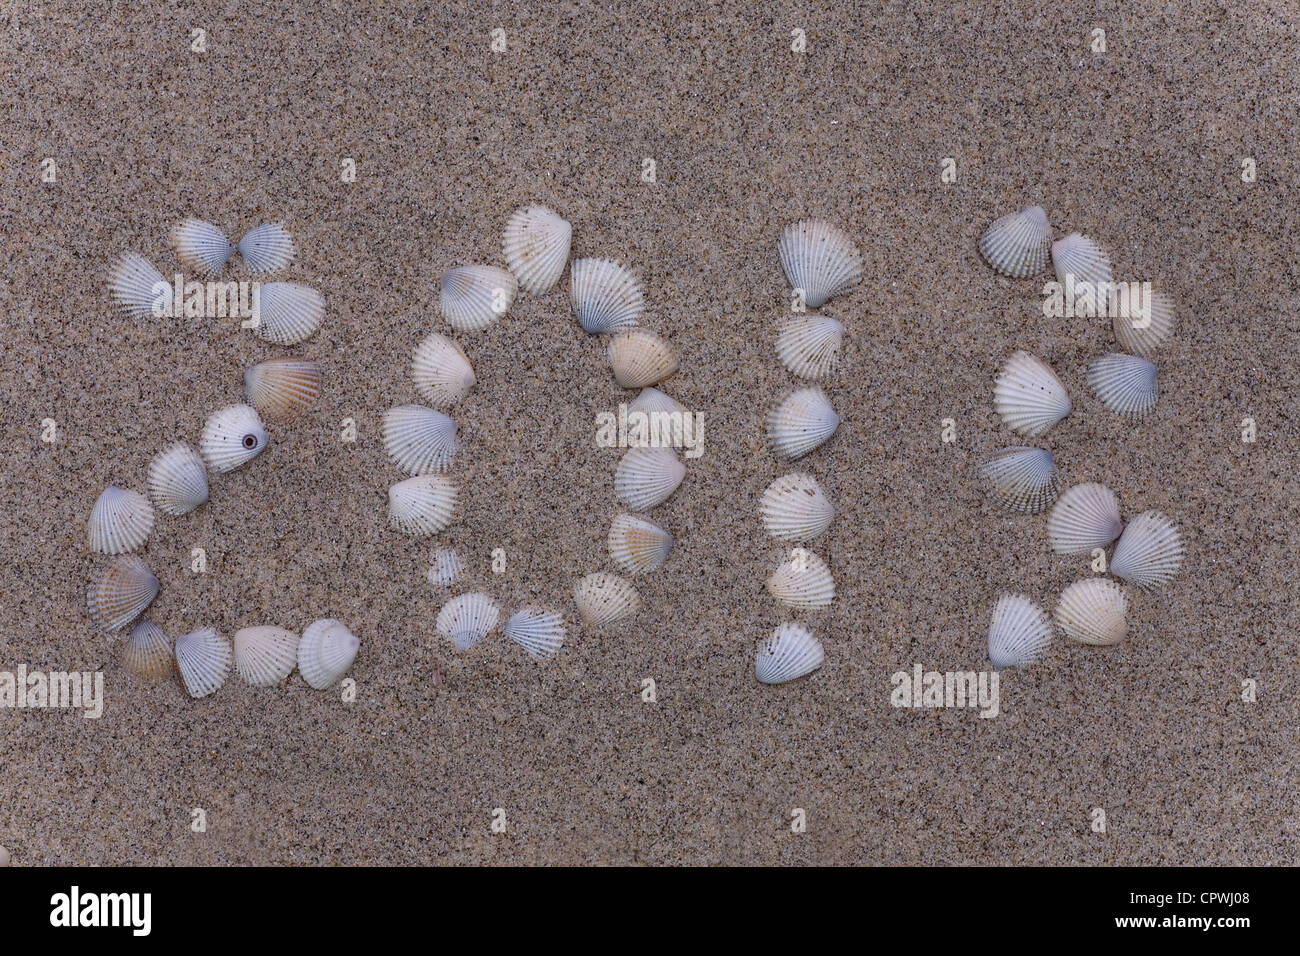 new 2013 year numbers drawings from shell in the sand on the beach - Stock Image